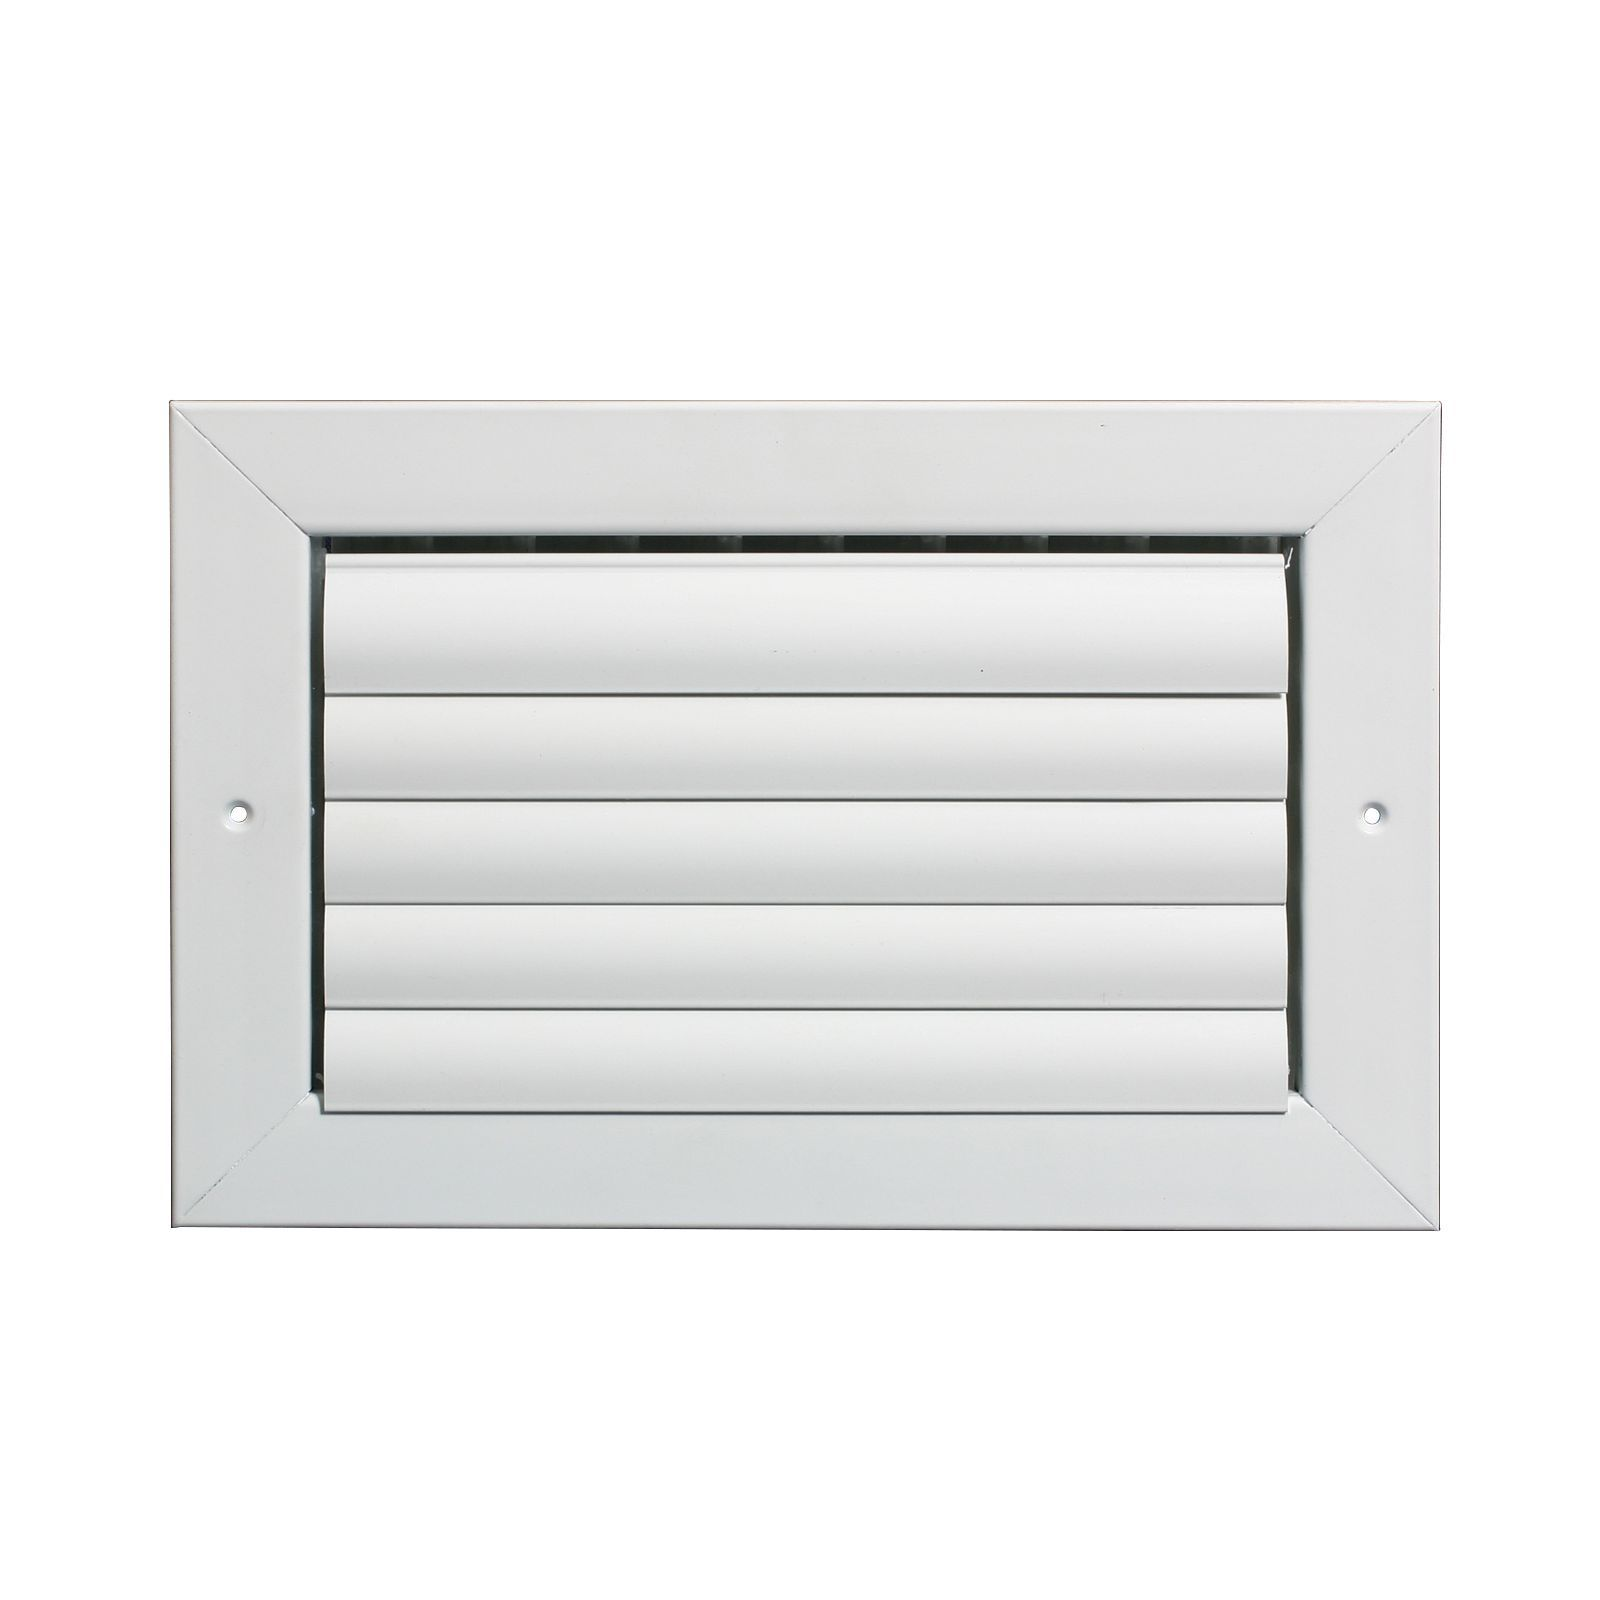 "Grille Tech CL1M1212 - Aluminum Ceiling 1-Way Deflection Supply, Multi-shutter 12"" X 12"" White"